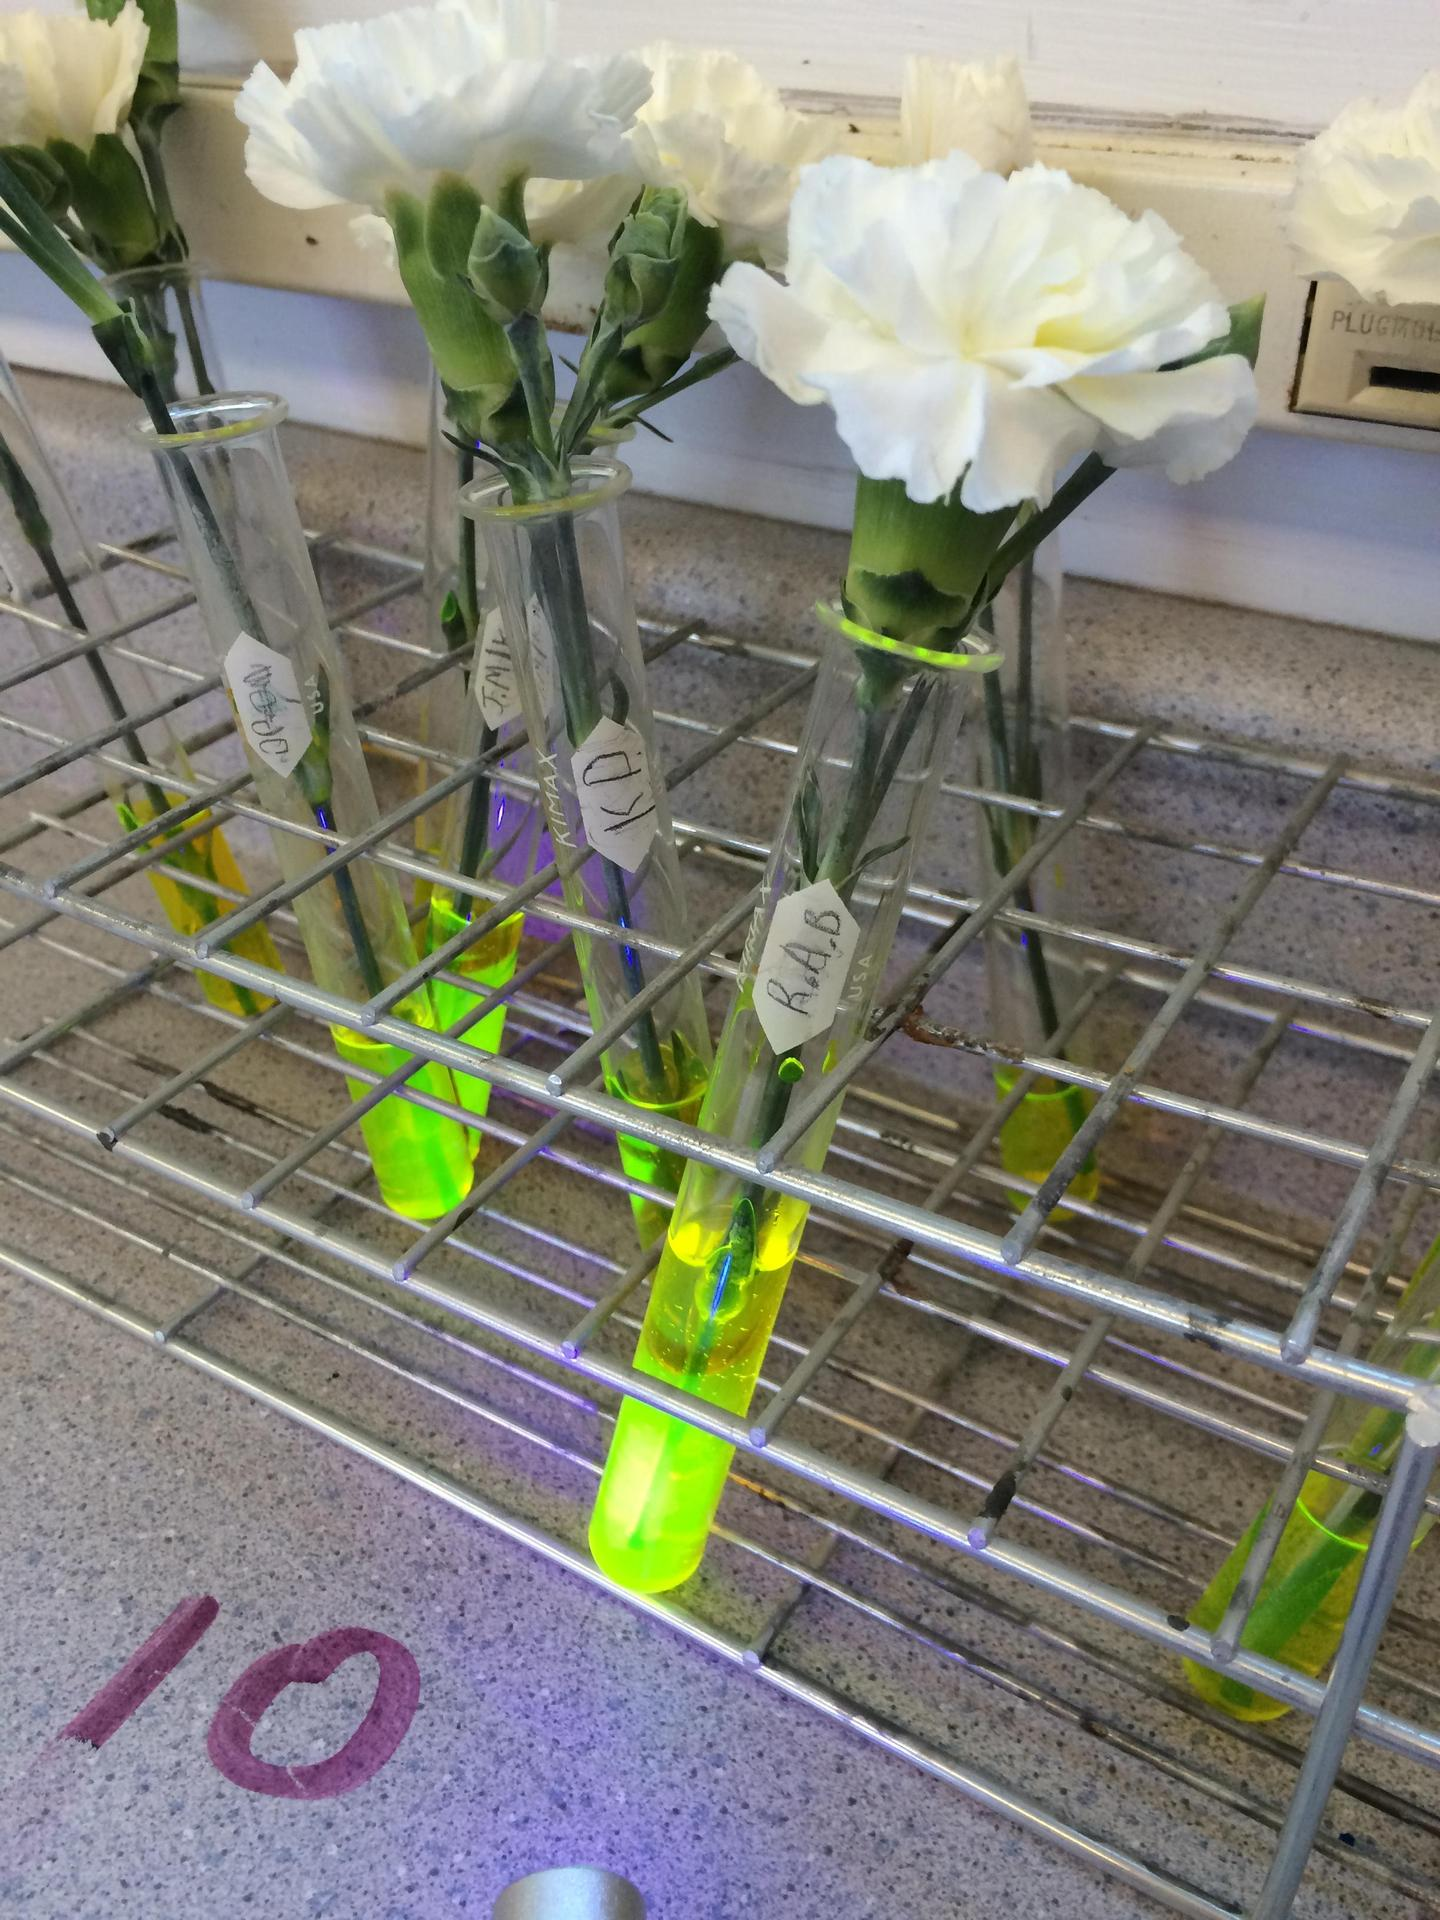 An experiment to show the vascular system of a plant using a fluorescing dye.